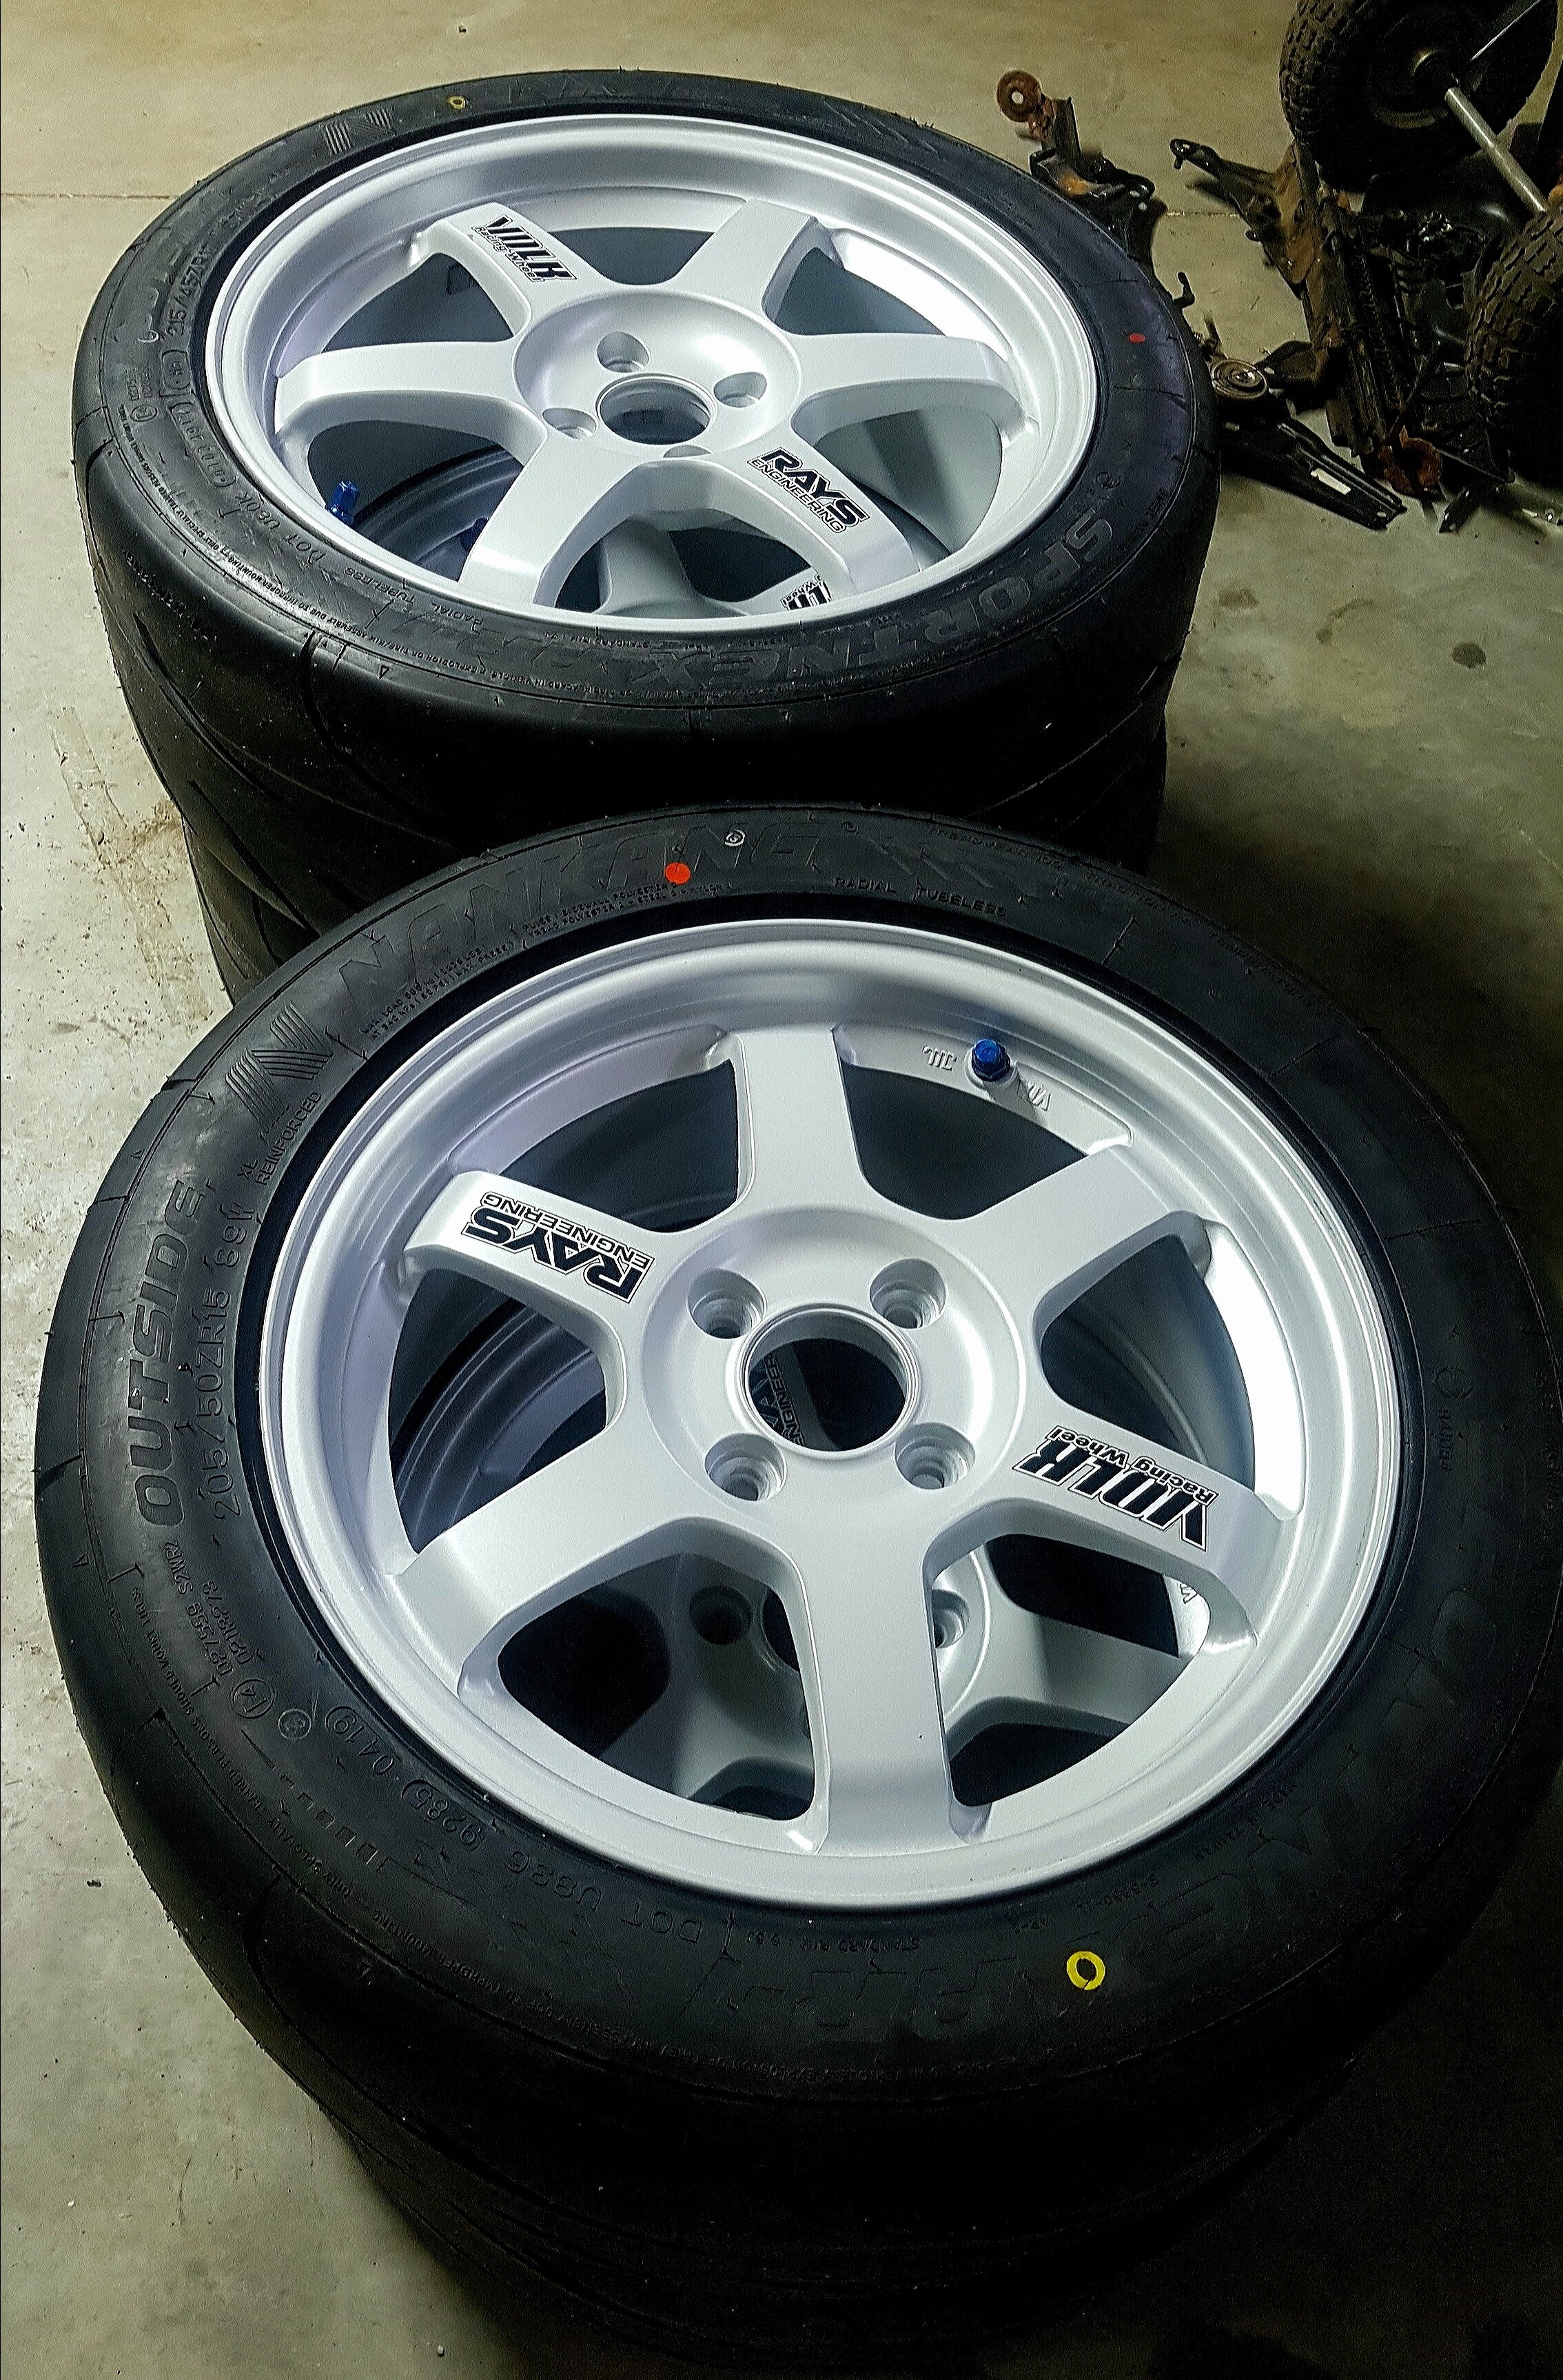 """Well here is my new set of wheels! Freshly coated TE37 in 15""""/17"""" stagger. Thanks to my buddy Rob at the wheel clinic for taking care of these for me on such short notice. Pretty happy with the color we chose (white silver) as I really dig the silver on silver."""